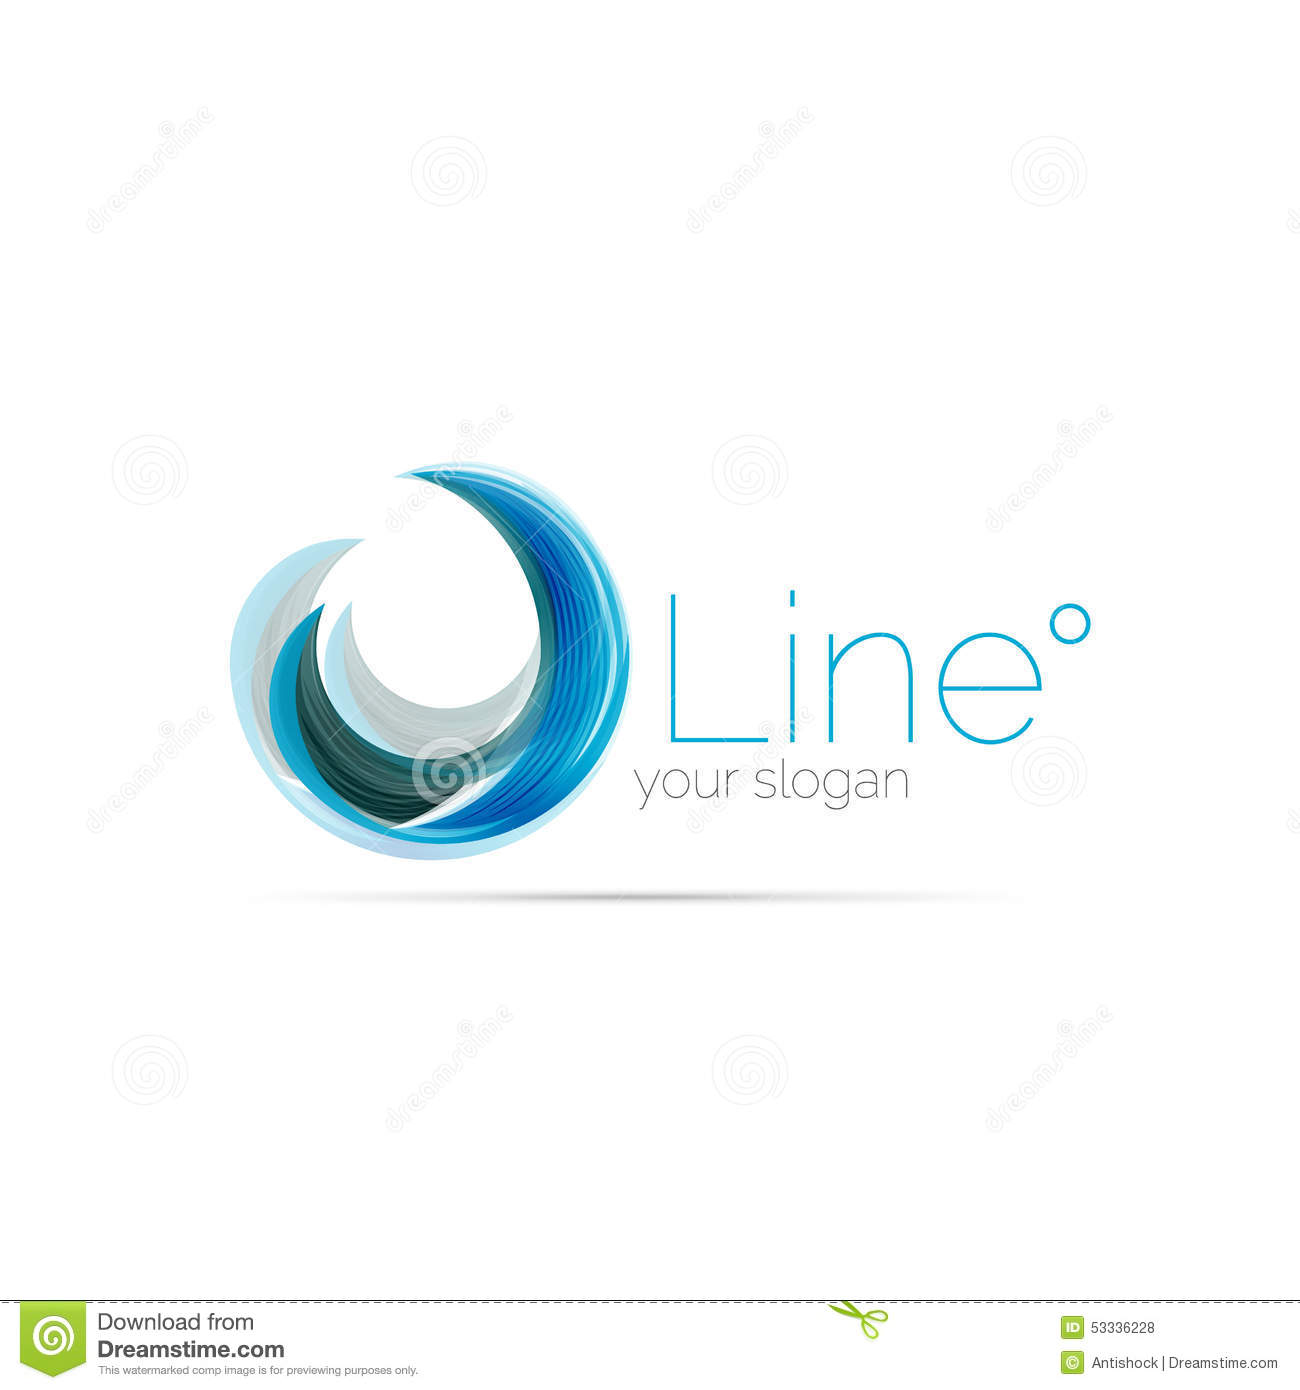 company logo design - Company Logo Design Ideas